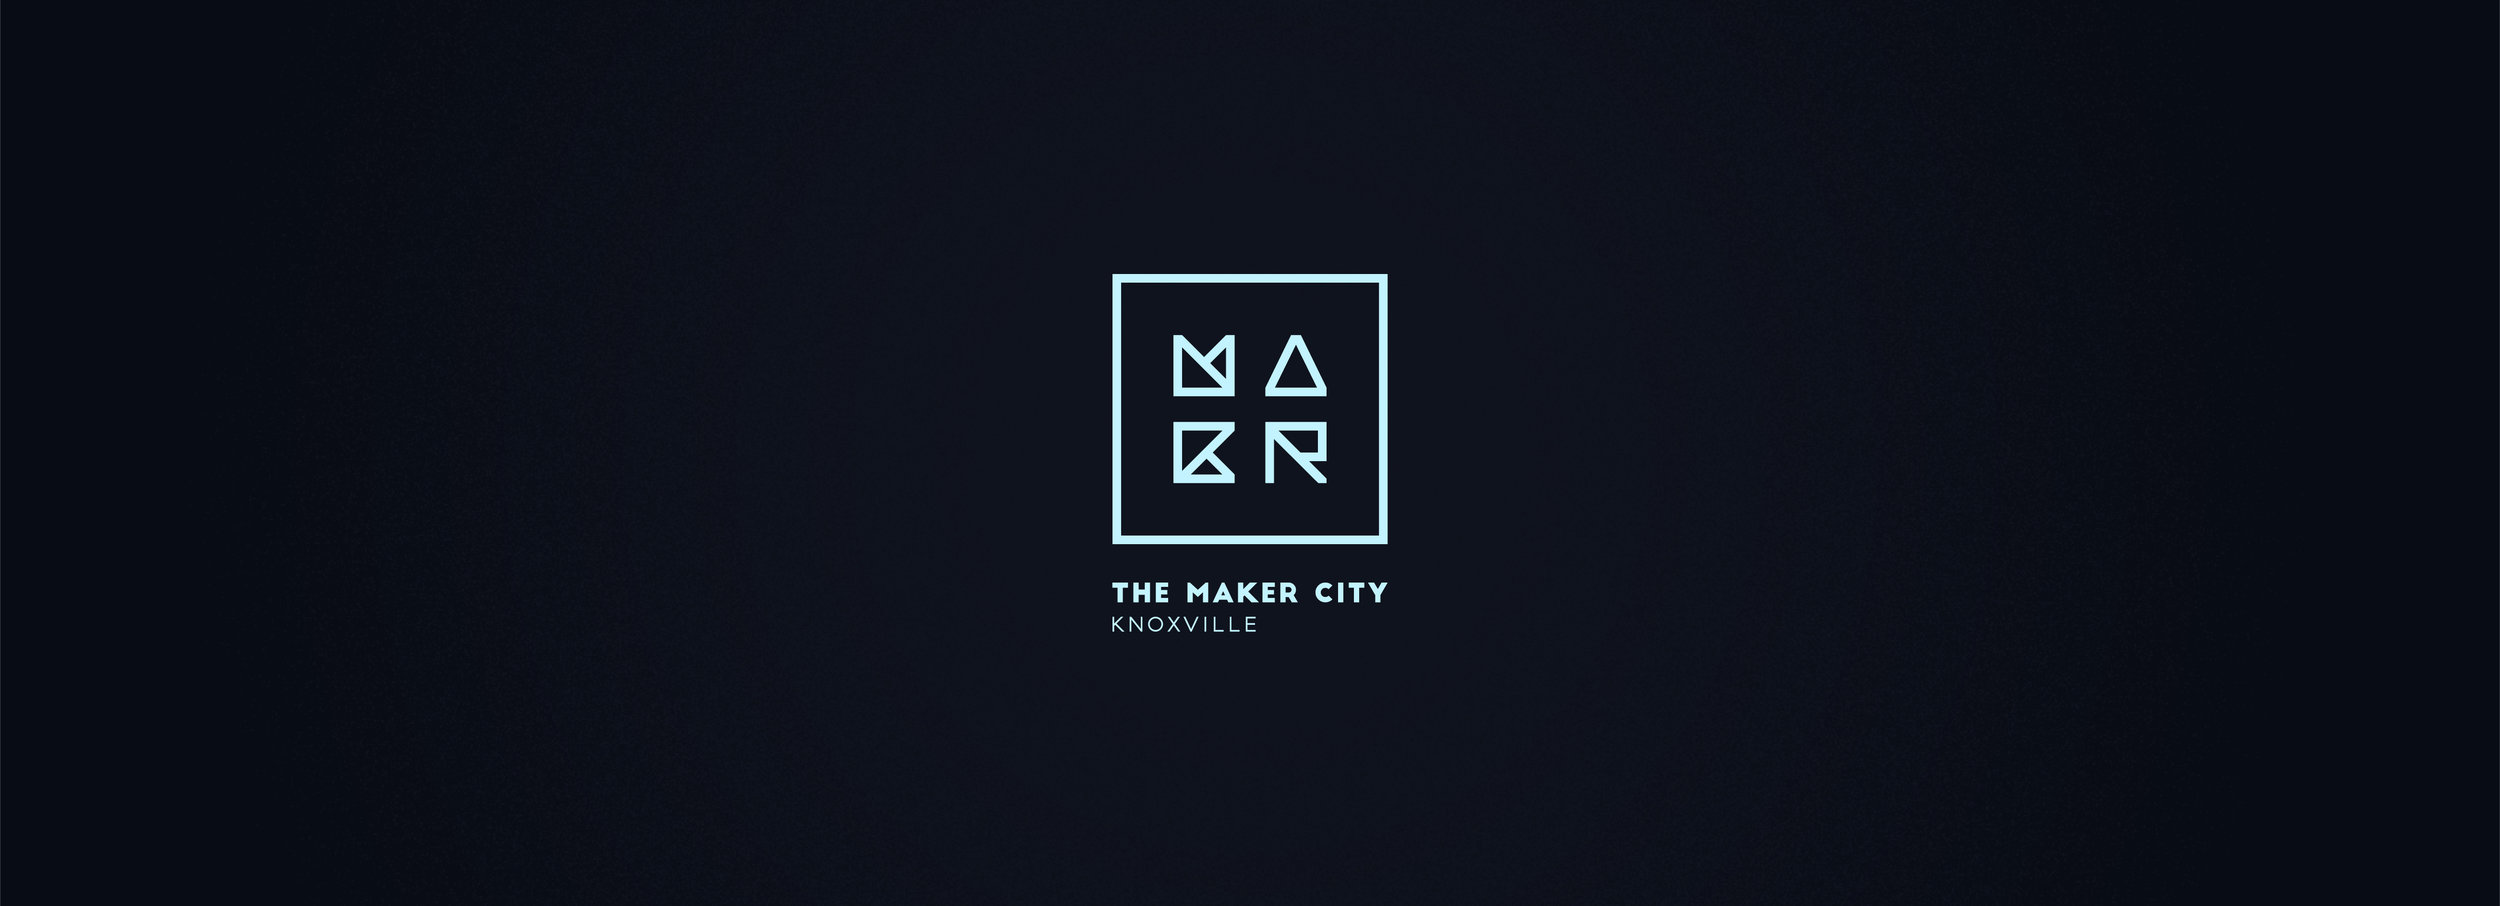 The Maker City — Knoxville — Ben Maxey